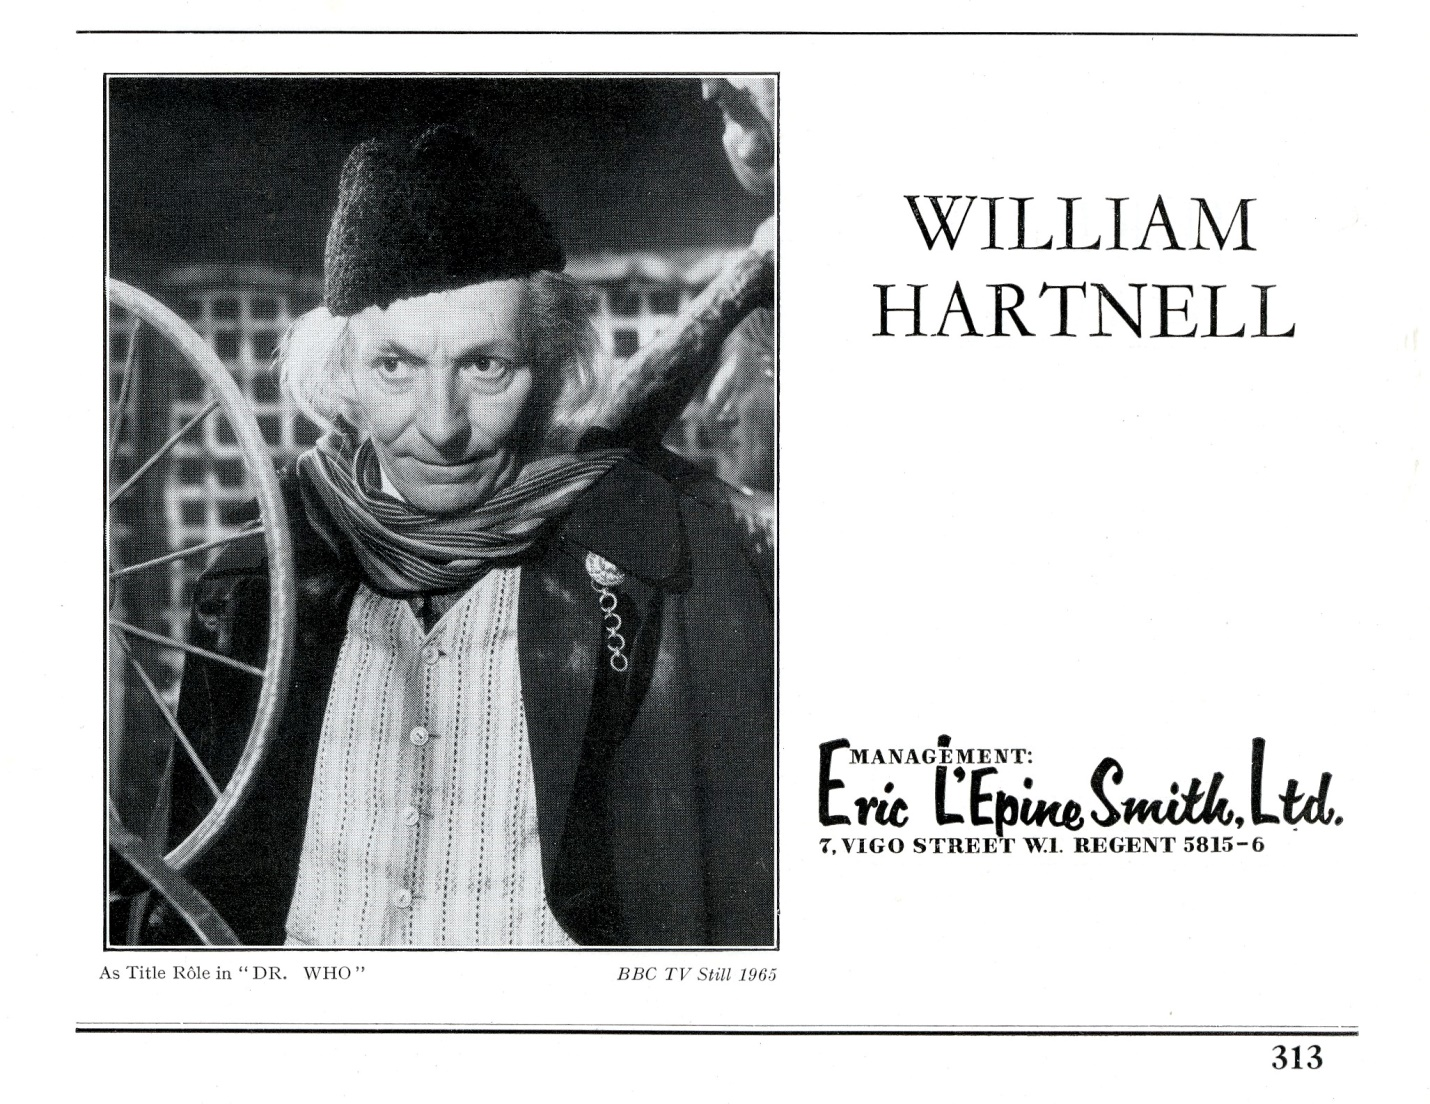 William Hartnell's entry in The Spotlight, 1965